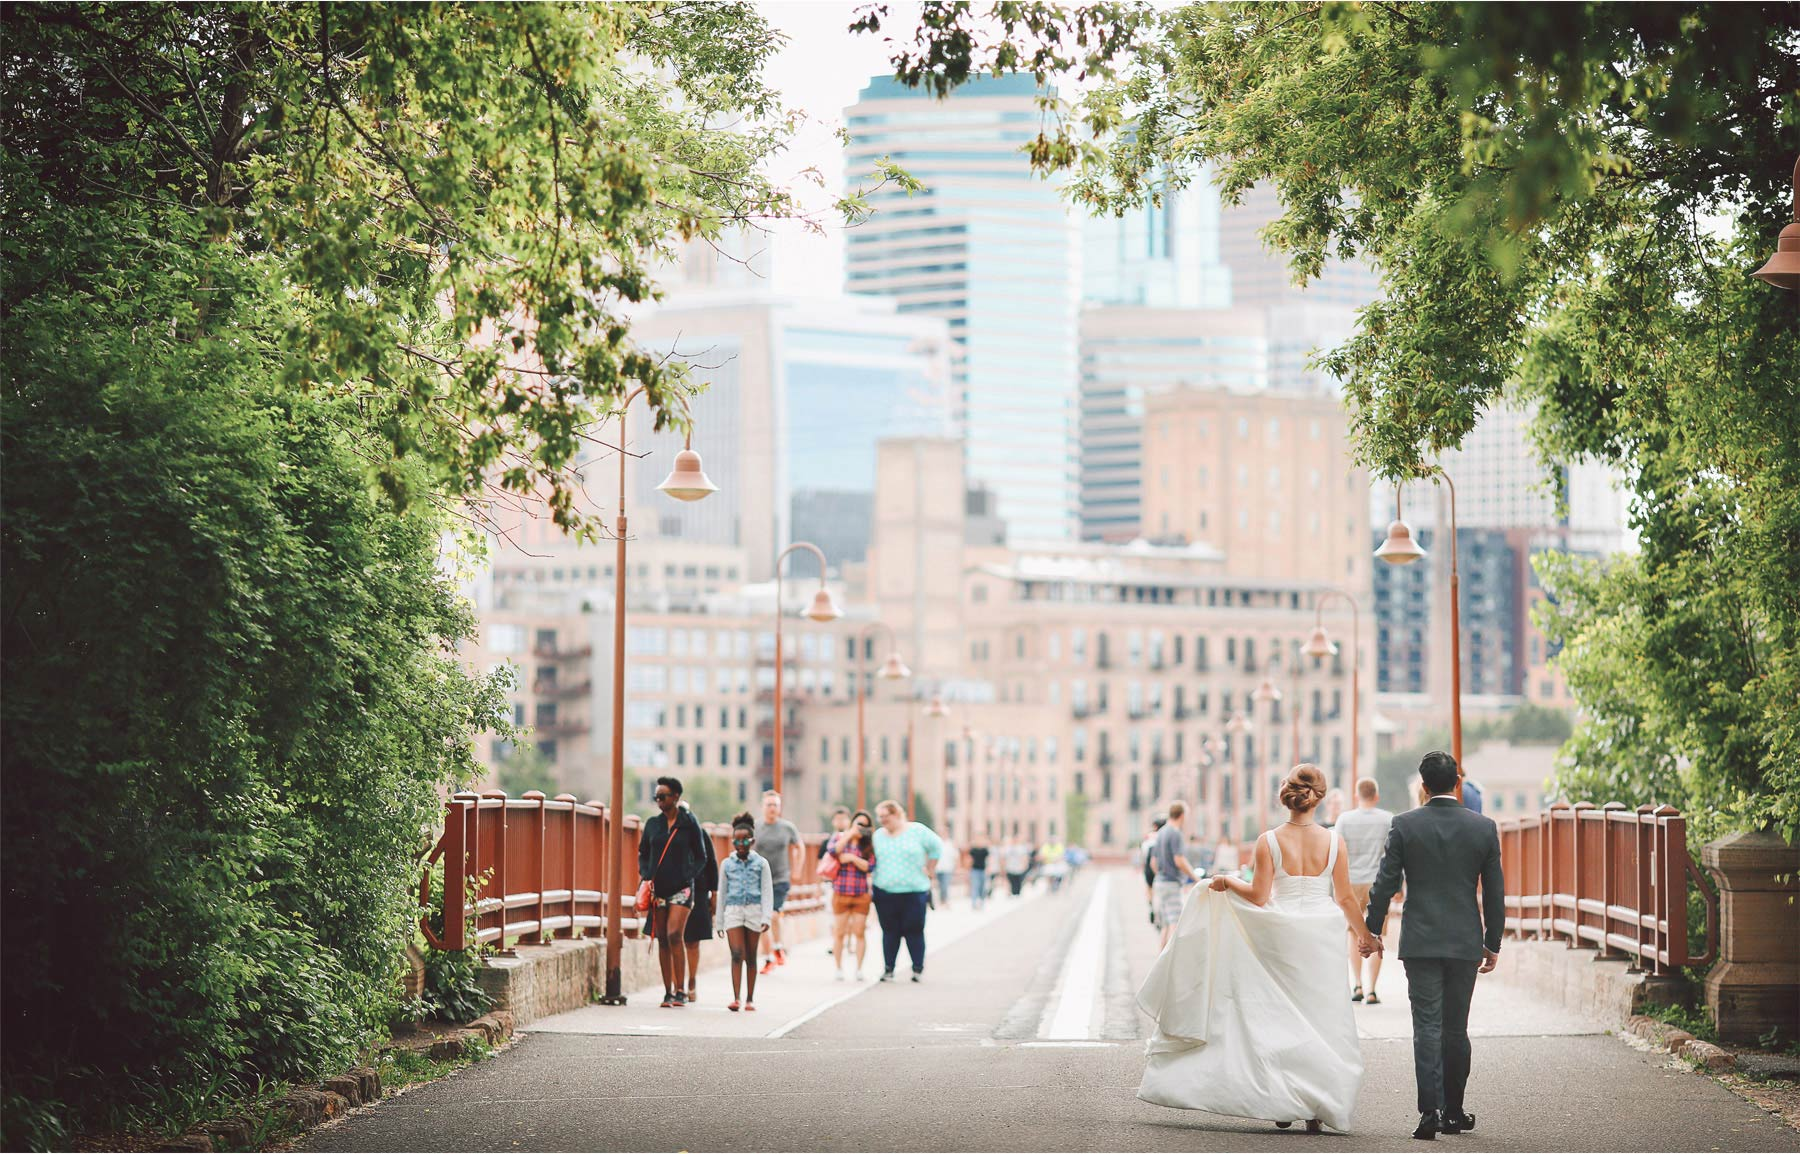 17-Minneapolis-Minnesota-Wedding-Photographer-by-Andrew-Vick-Photography--Spring-Stone-Arch-Bridge-Bride-Groom-Pedestrians-Downtown-Skyline-Vintage-Rachel-and-Venu.jpg